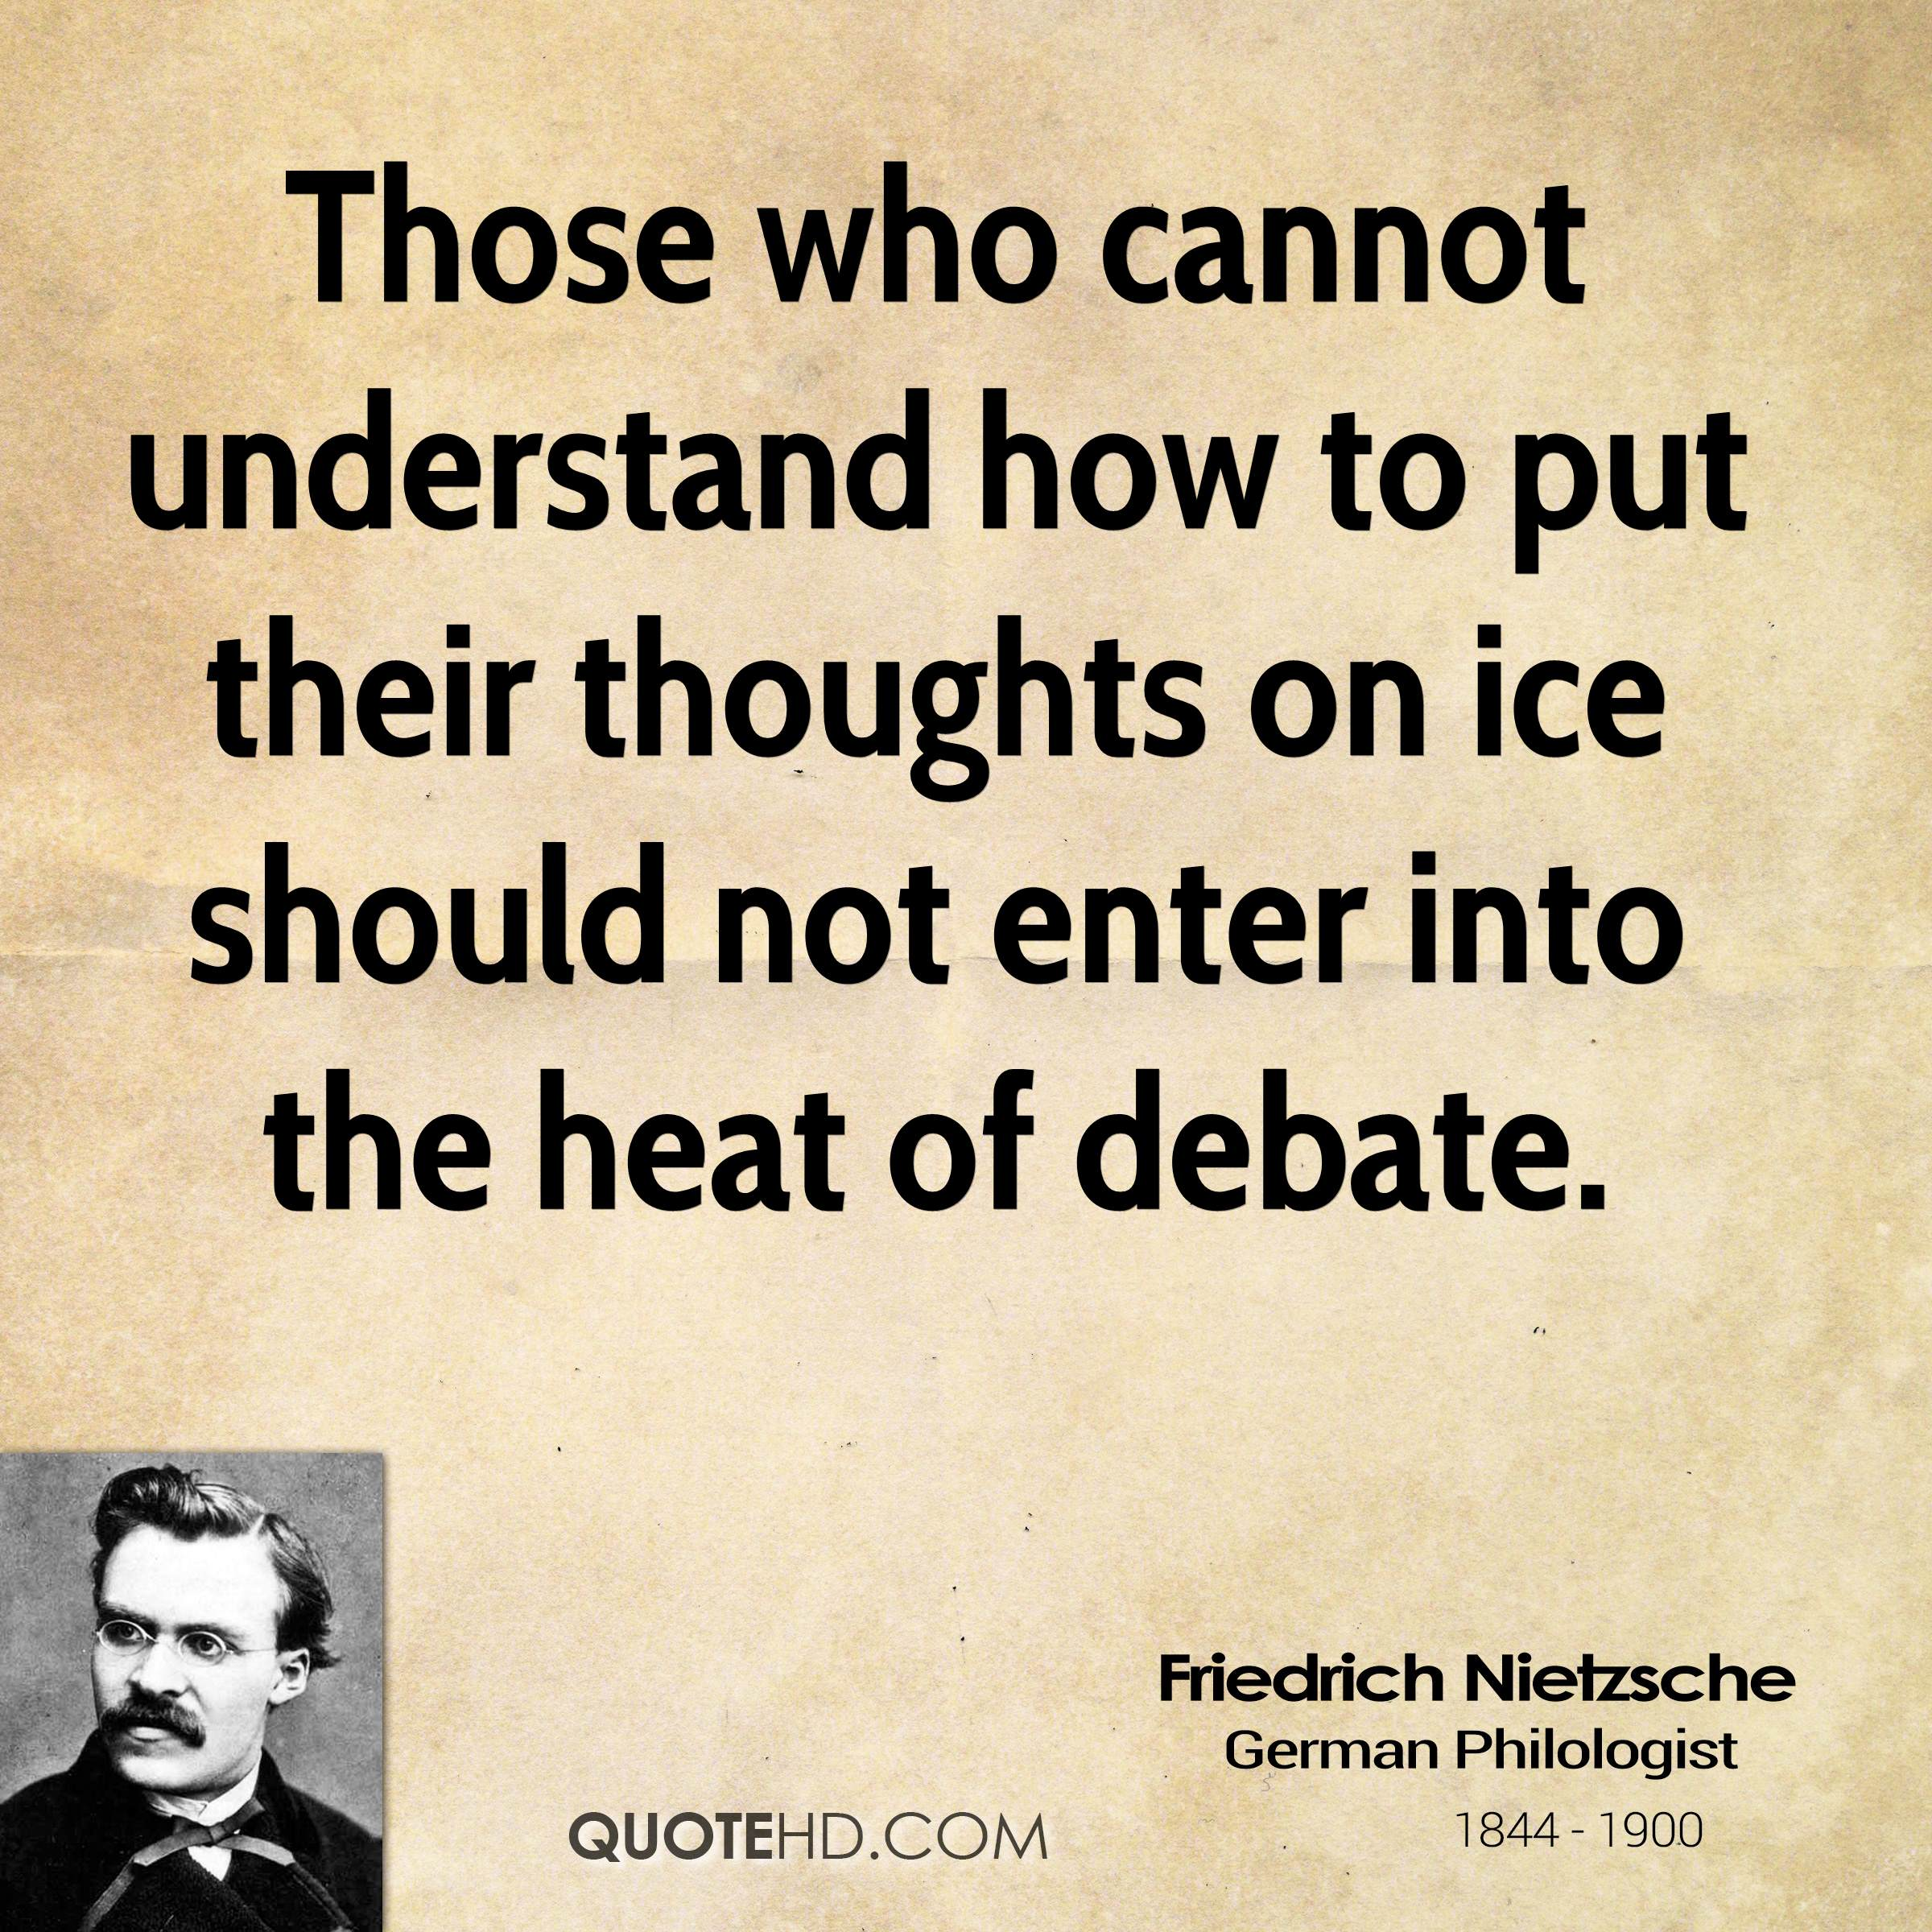 nietzsche debate The nietzsche kritik a resource for forensics in policy debate, one of the more arcane concepts is the k critical arguments distinguish policy from congressional, public forum, and (for now) lincoln-douglas debate.